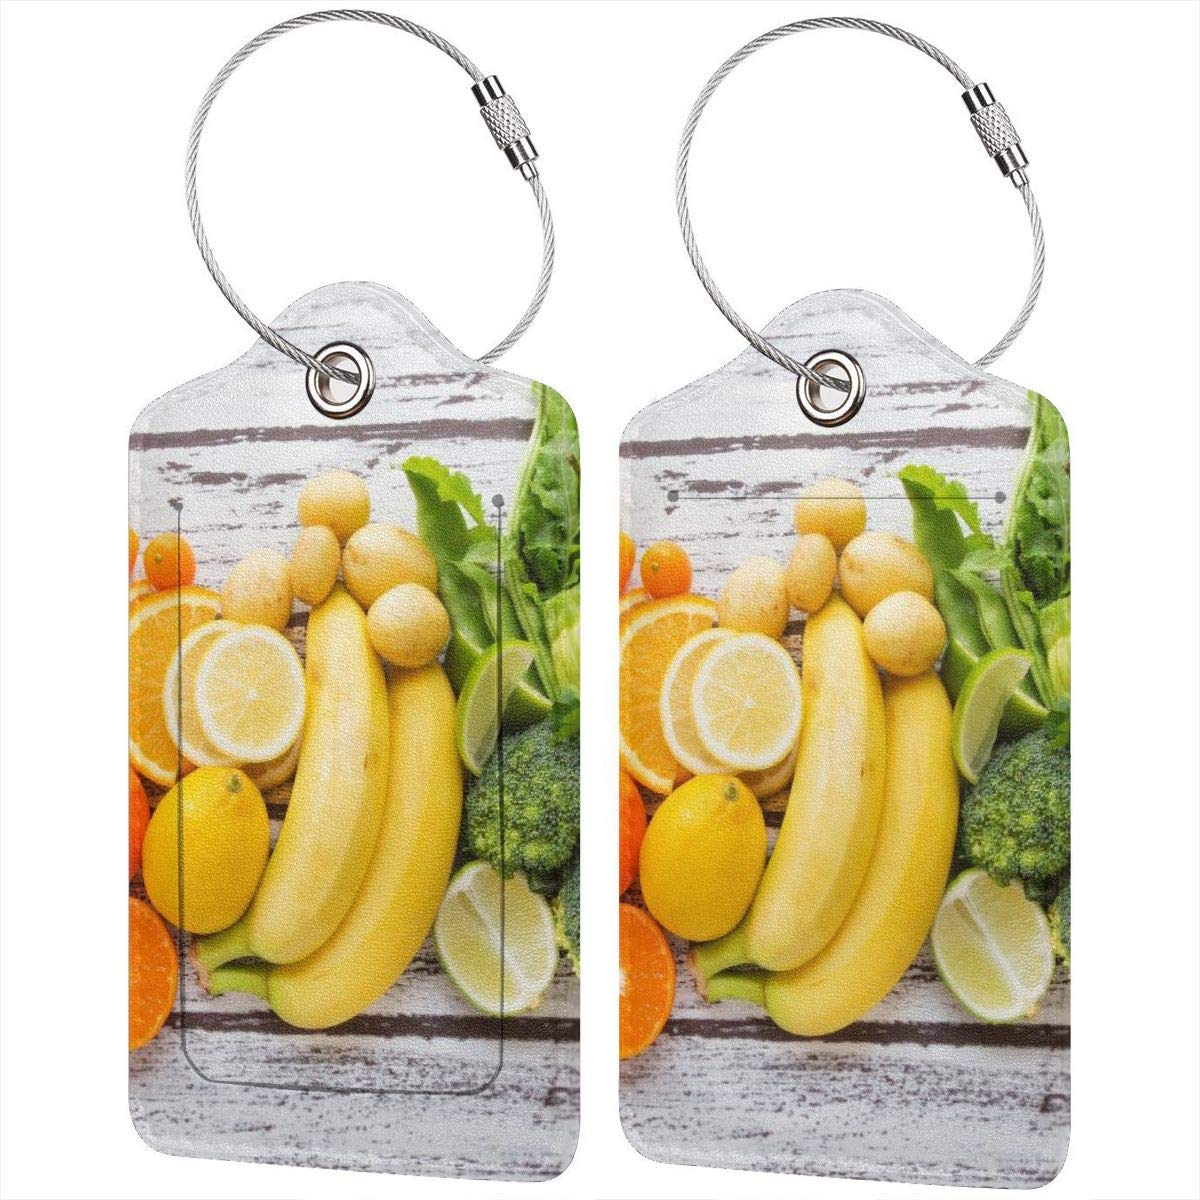 Kitchen Fresh Fruits Vegetables On Wooden Table Luggage Tag Label Travel Bag Label With Privacy Cover Luggage Tag Leather Personalized Suitcase Tag Travel Accessories